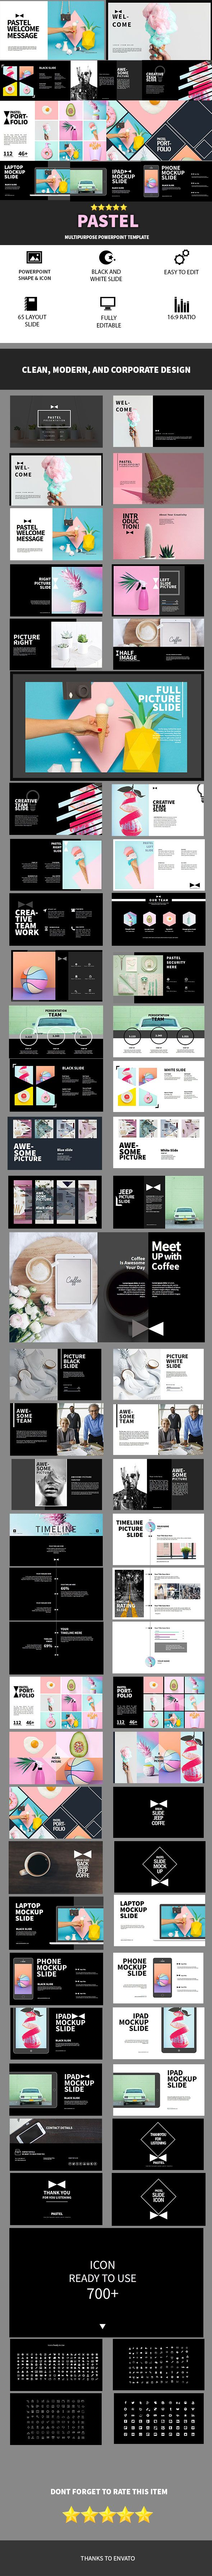 Pastel multipurpose powerpoint template apresentao projetos pastel multipurpose powerpoint template business powerpoint templates toneelgroepblik Image collections